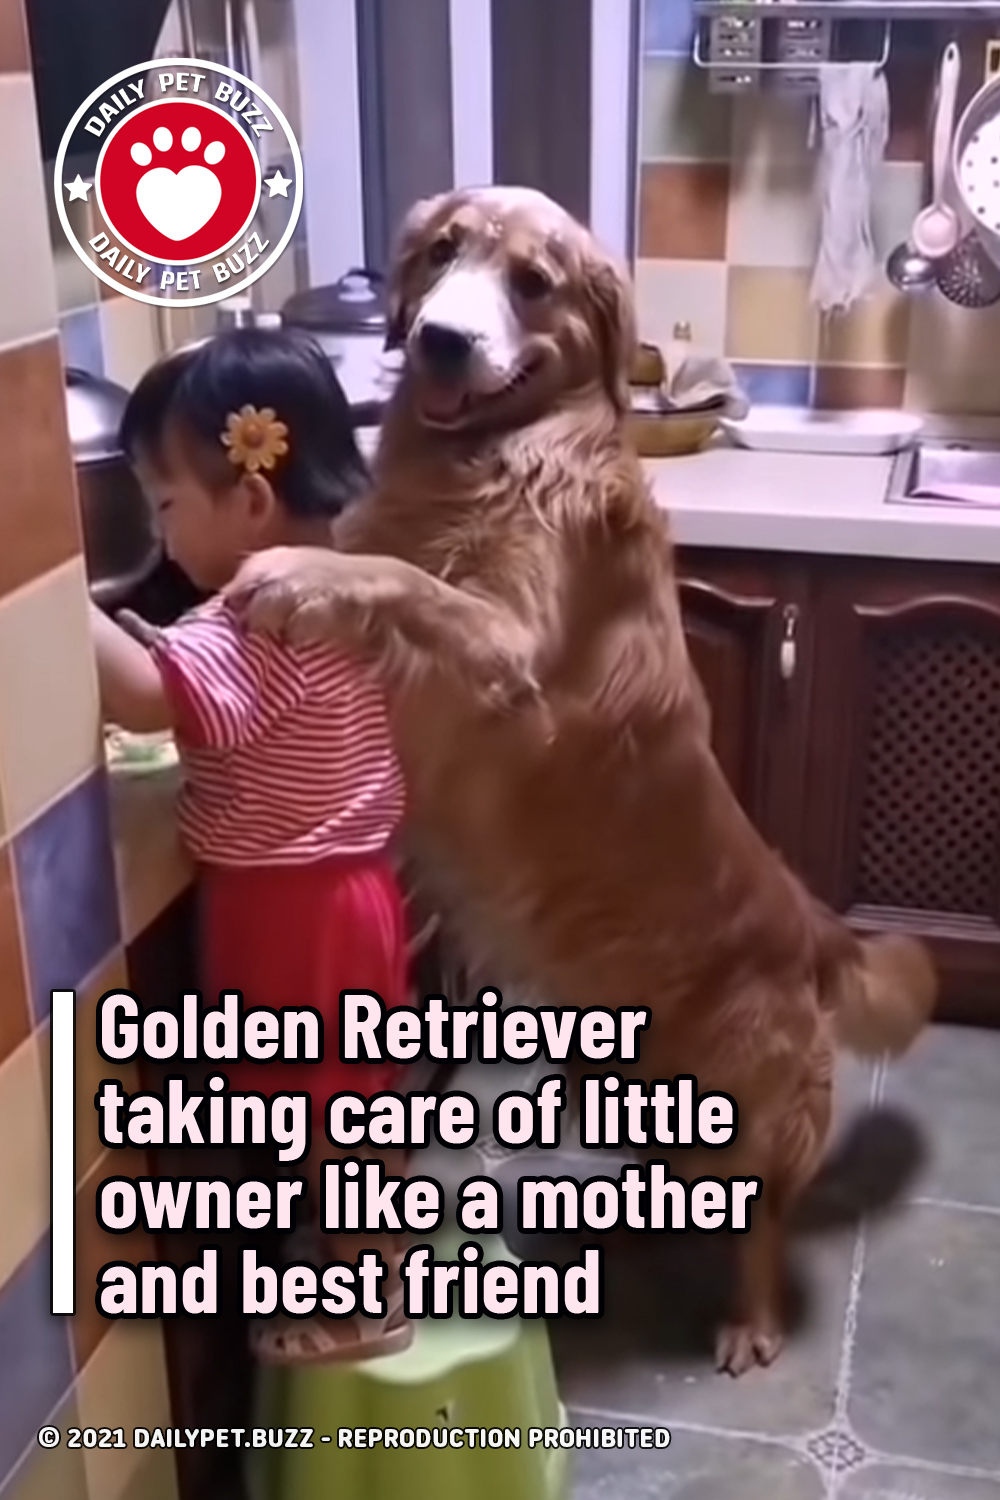 Golden Retriever taking care of little owner like a mother and best friend